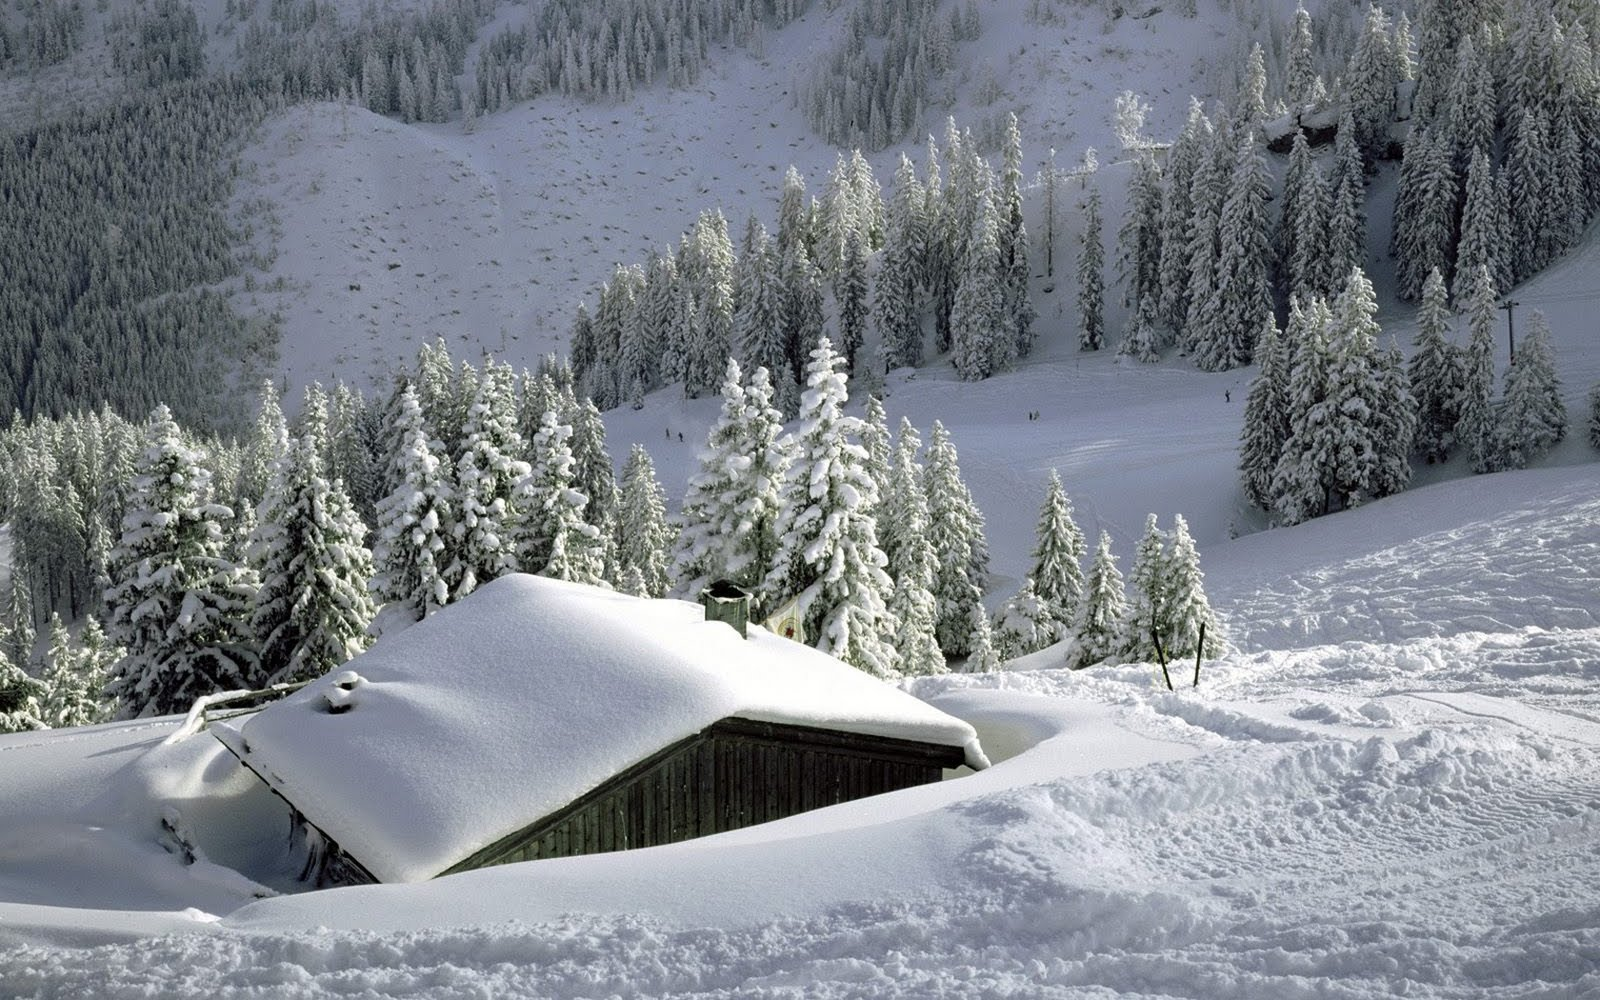 http://4.bp.blogspot.com/_2UbsSBz9ckE/SxrqmyjA5XI/AAAAAAAAAfE/XAgFXkfxEZA/s1600/Mountains_snow_winter_hd_wallpaper.jpg